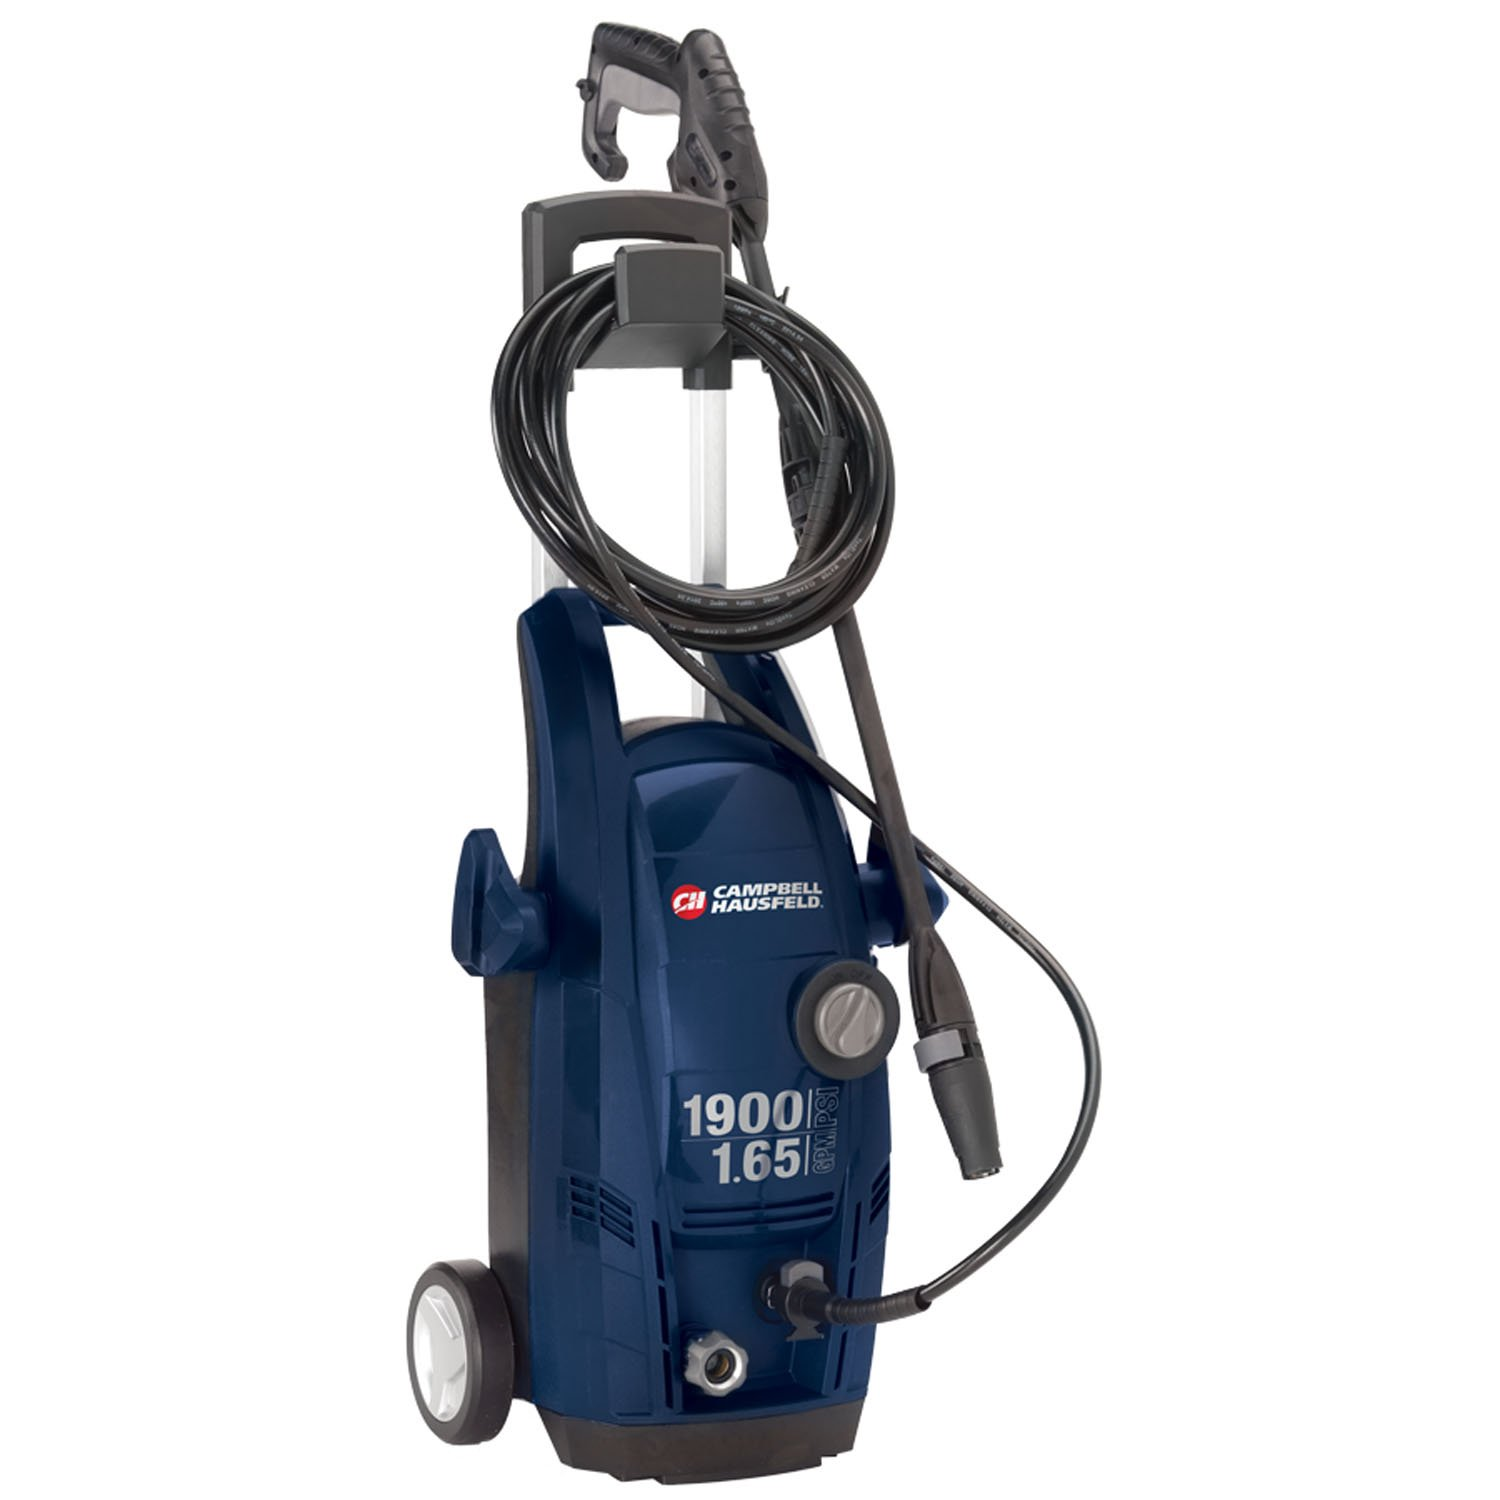 Top 10 Best Pressure Washers Reviews in 2020 8